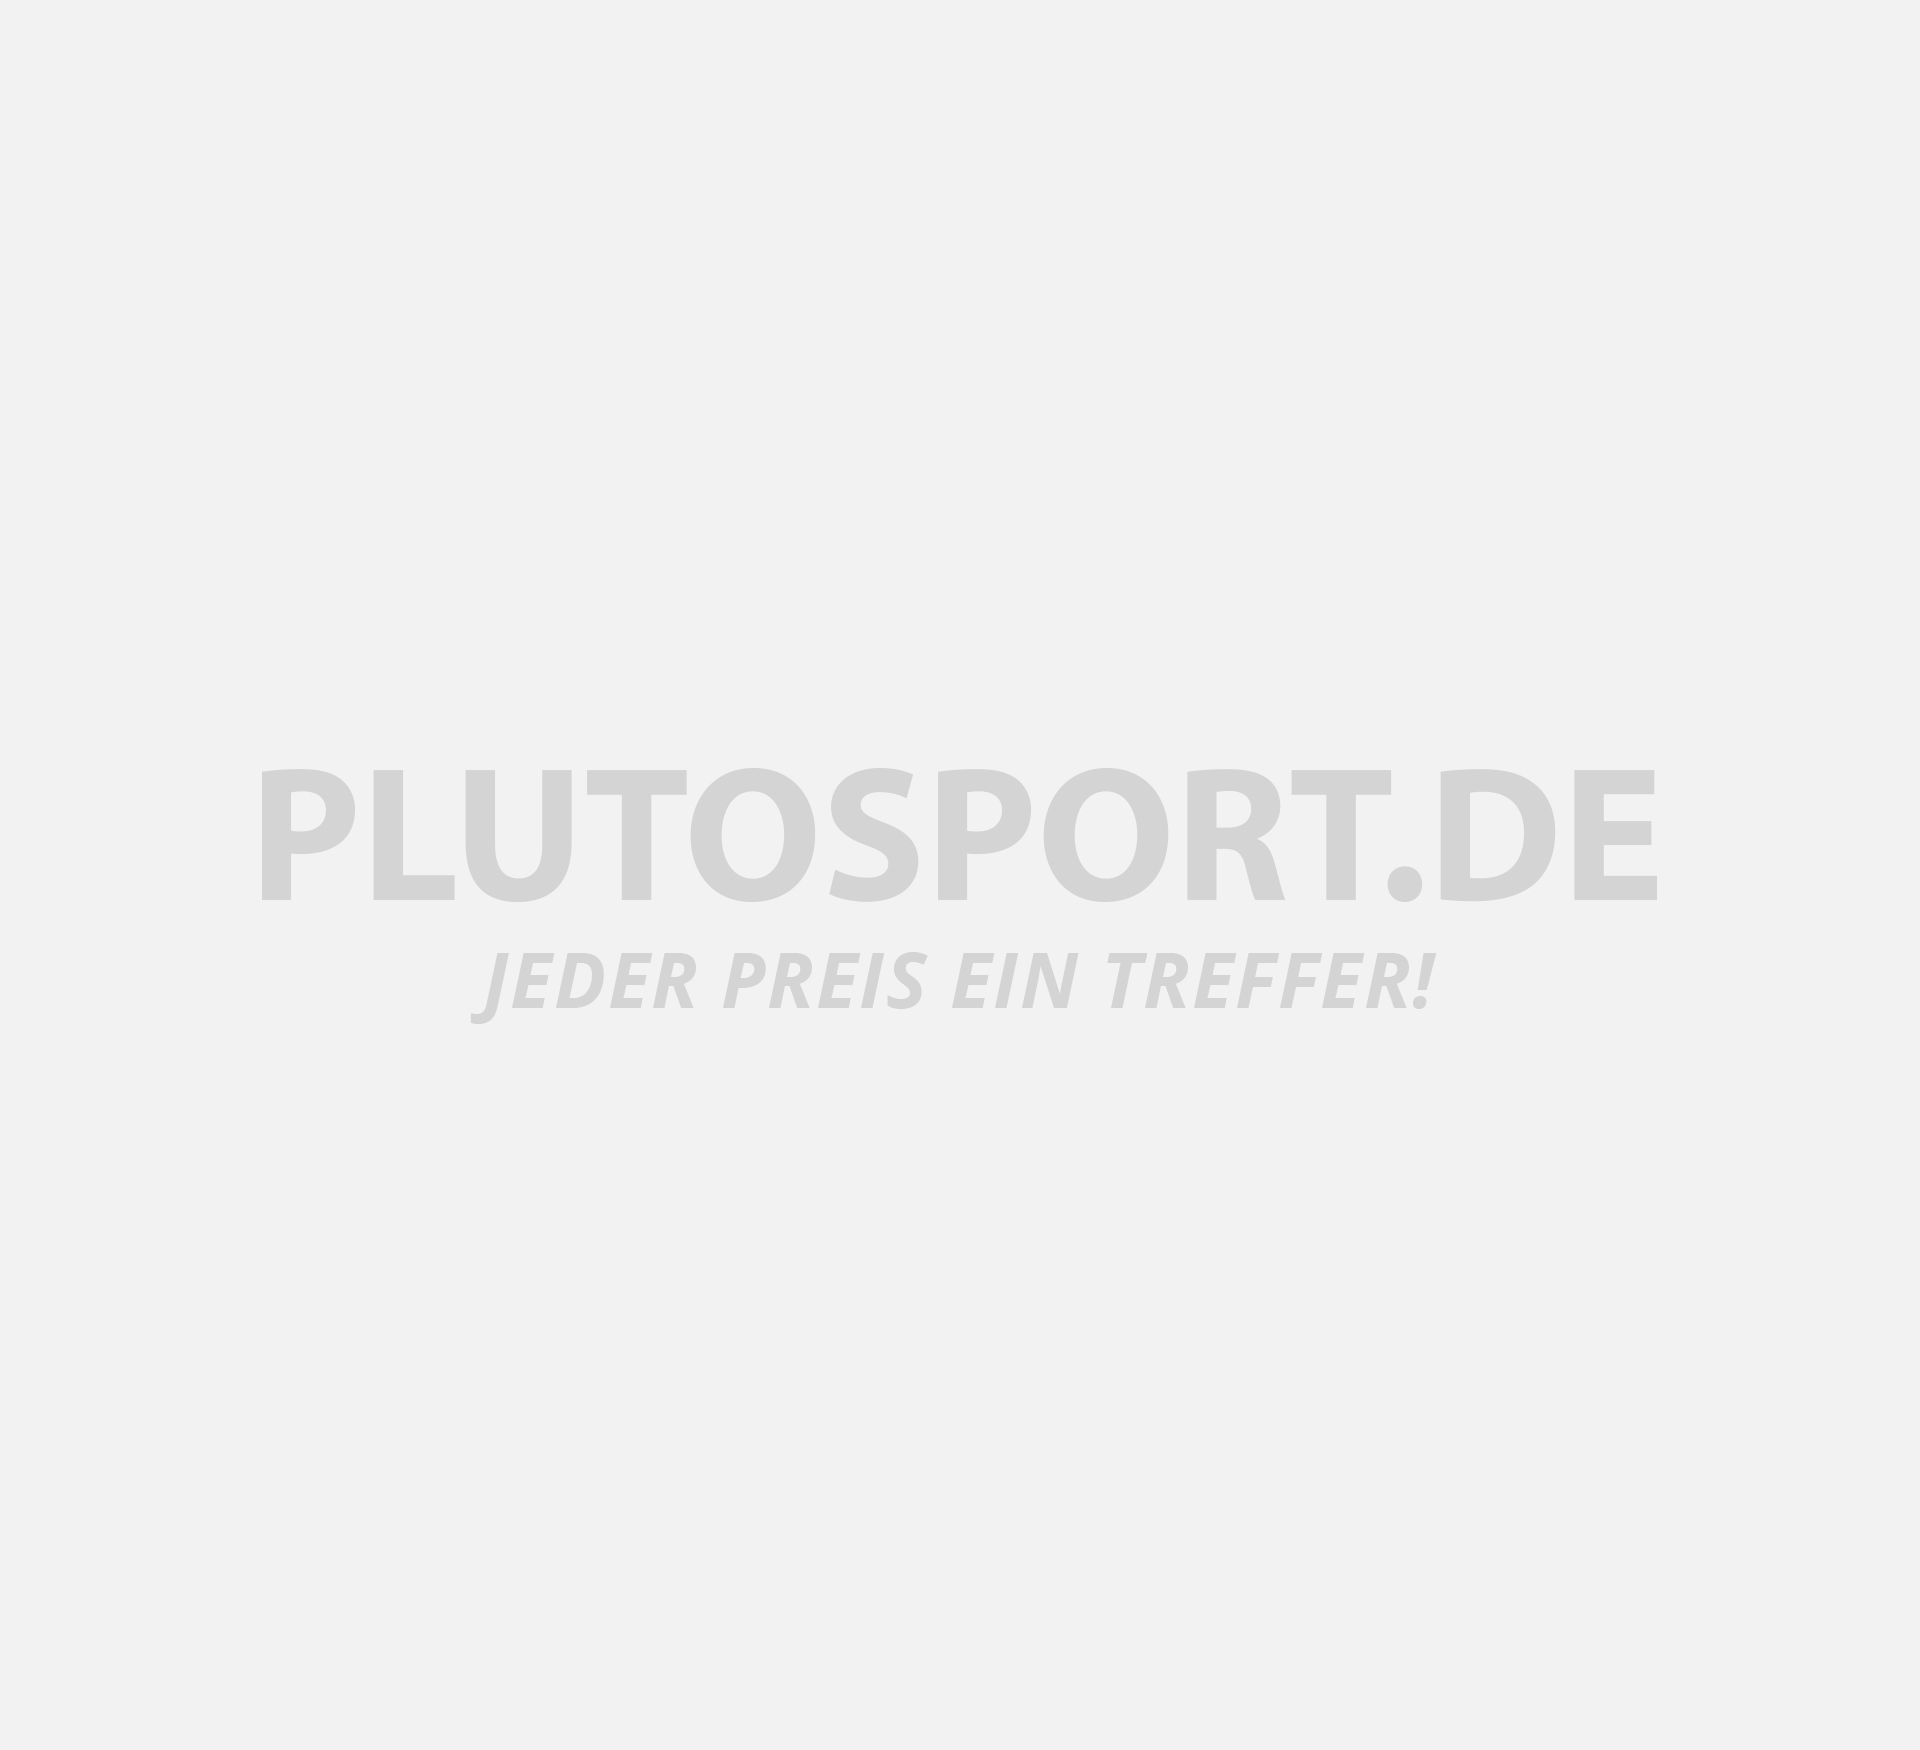 Reece Jungle Hockeyschlager Kinder